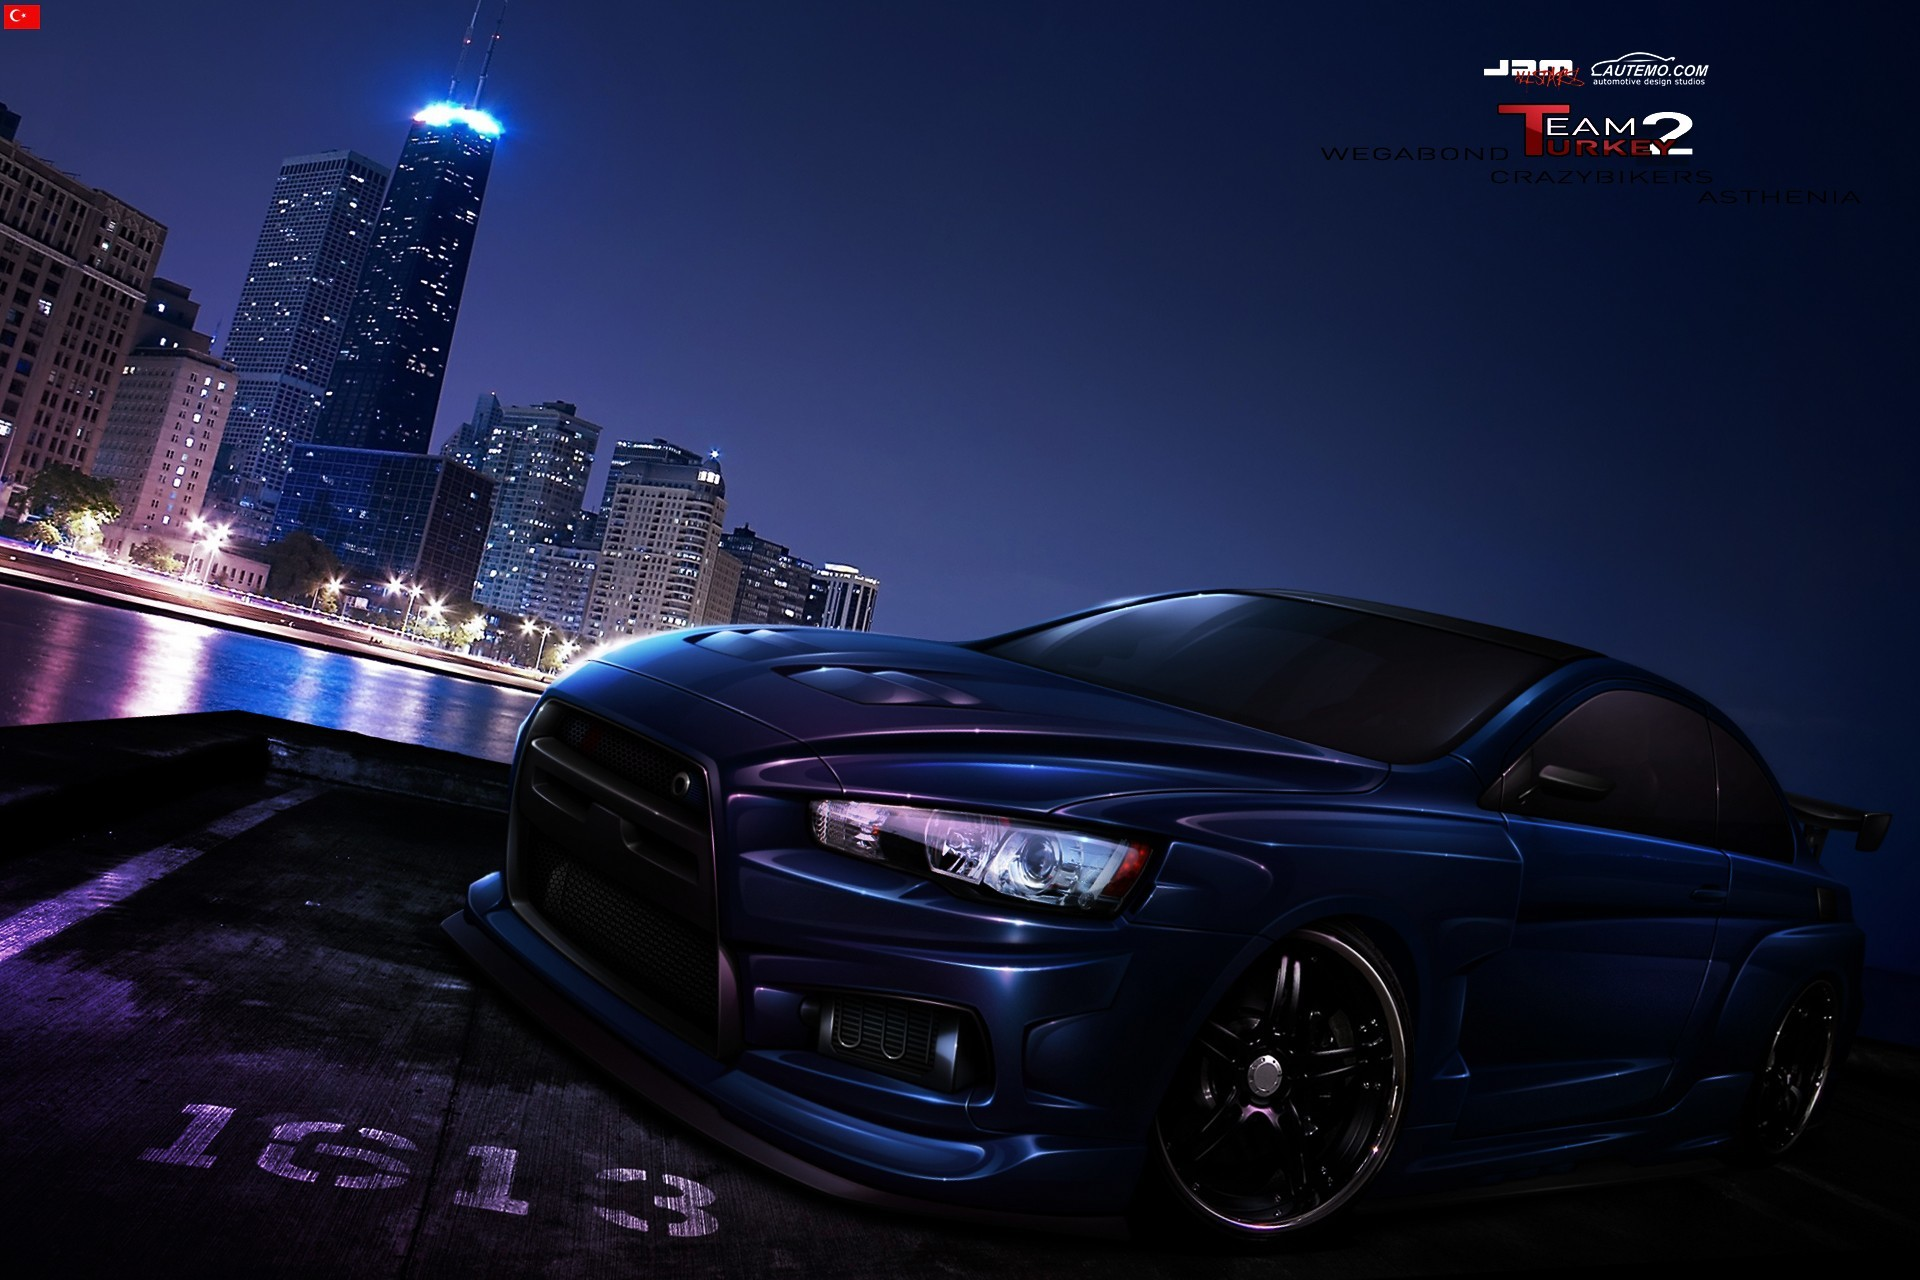 Mitsubishi Evo cityscapes pink HD Wallpaper